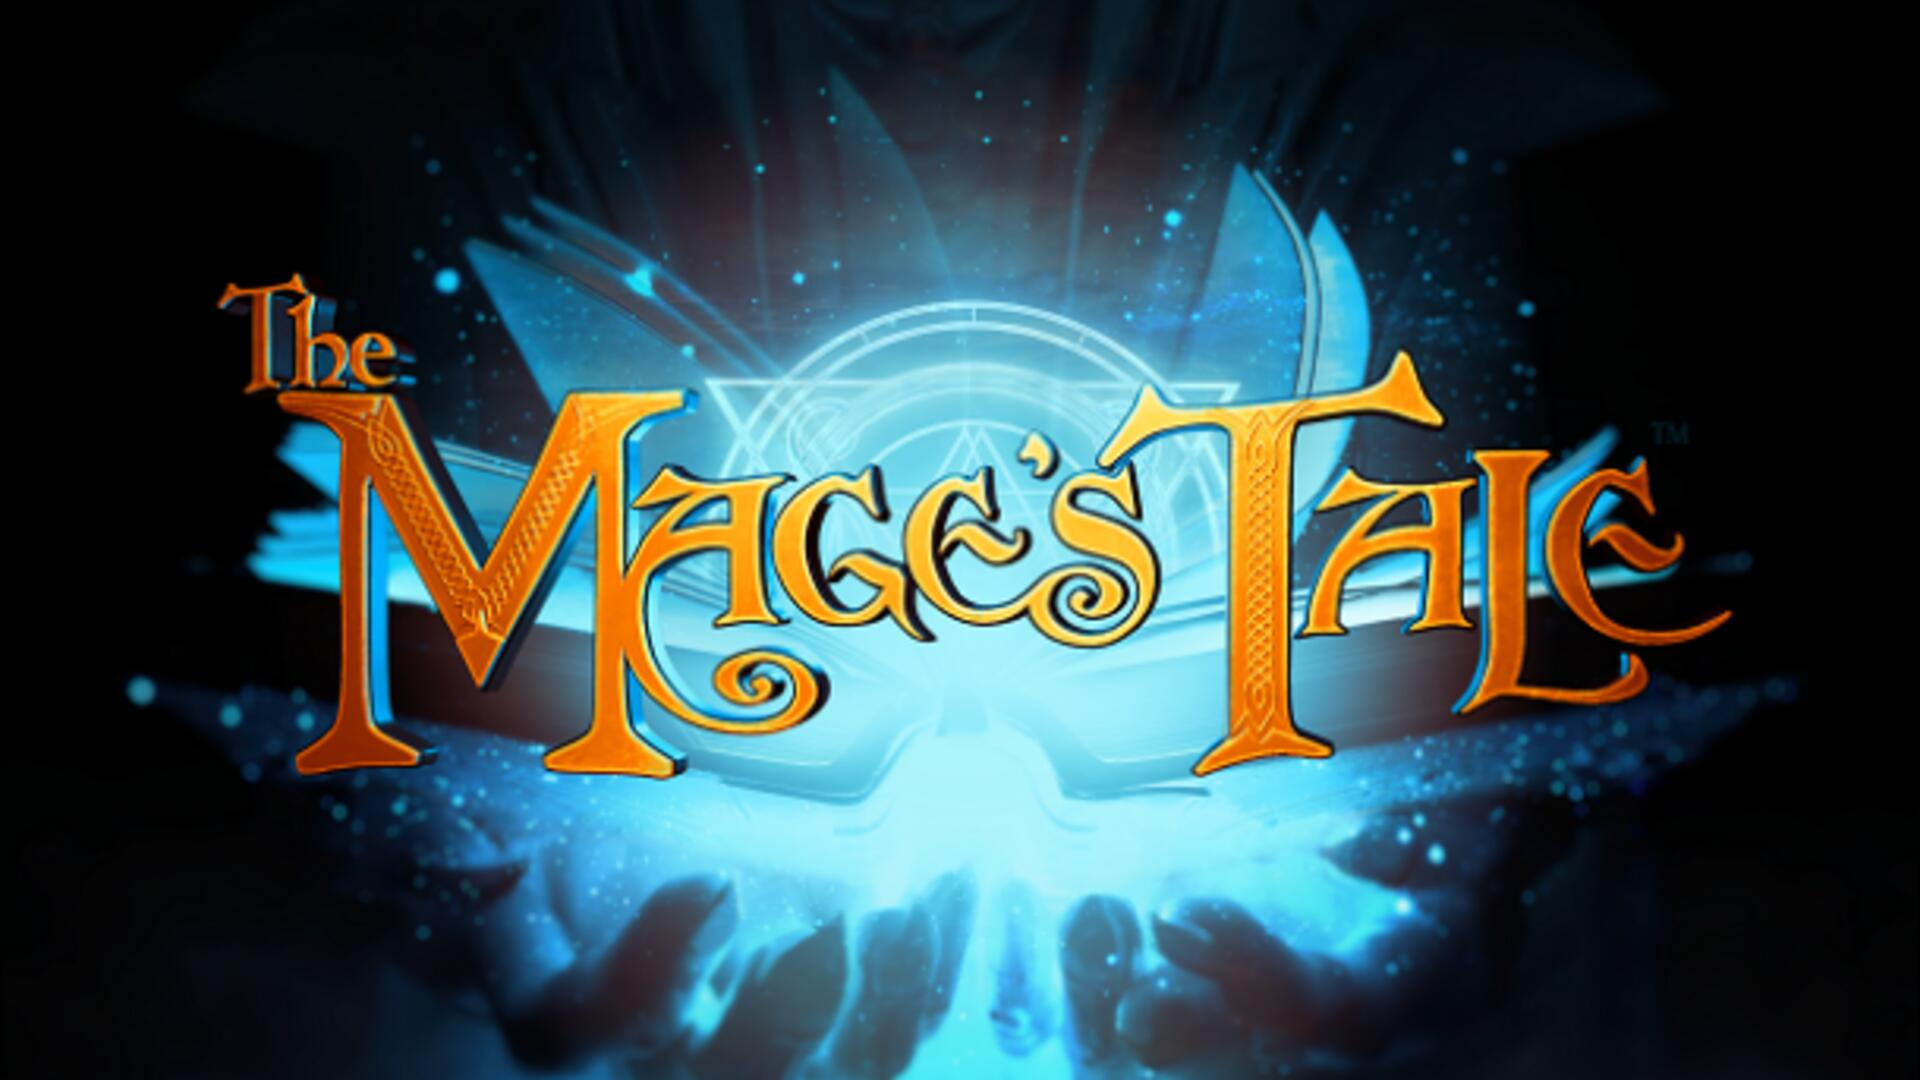 RPG Legend Brian Fargo Explains Why inXile Entertainment is Jumping Into VR With Mage's Tale